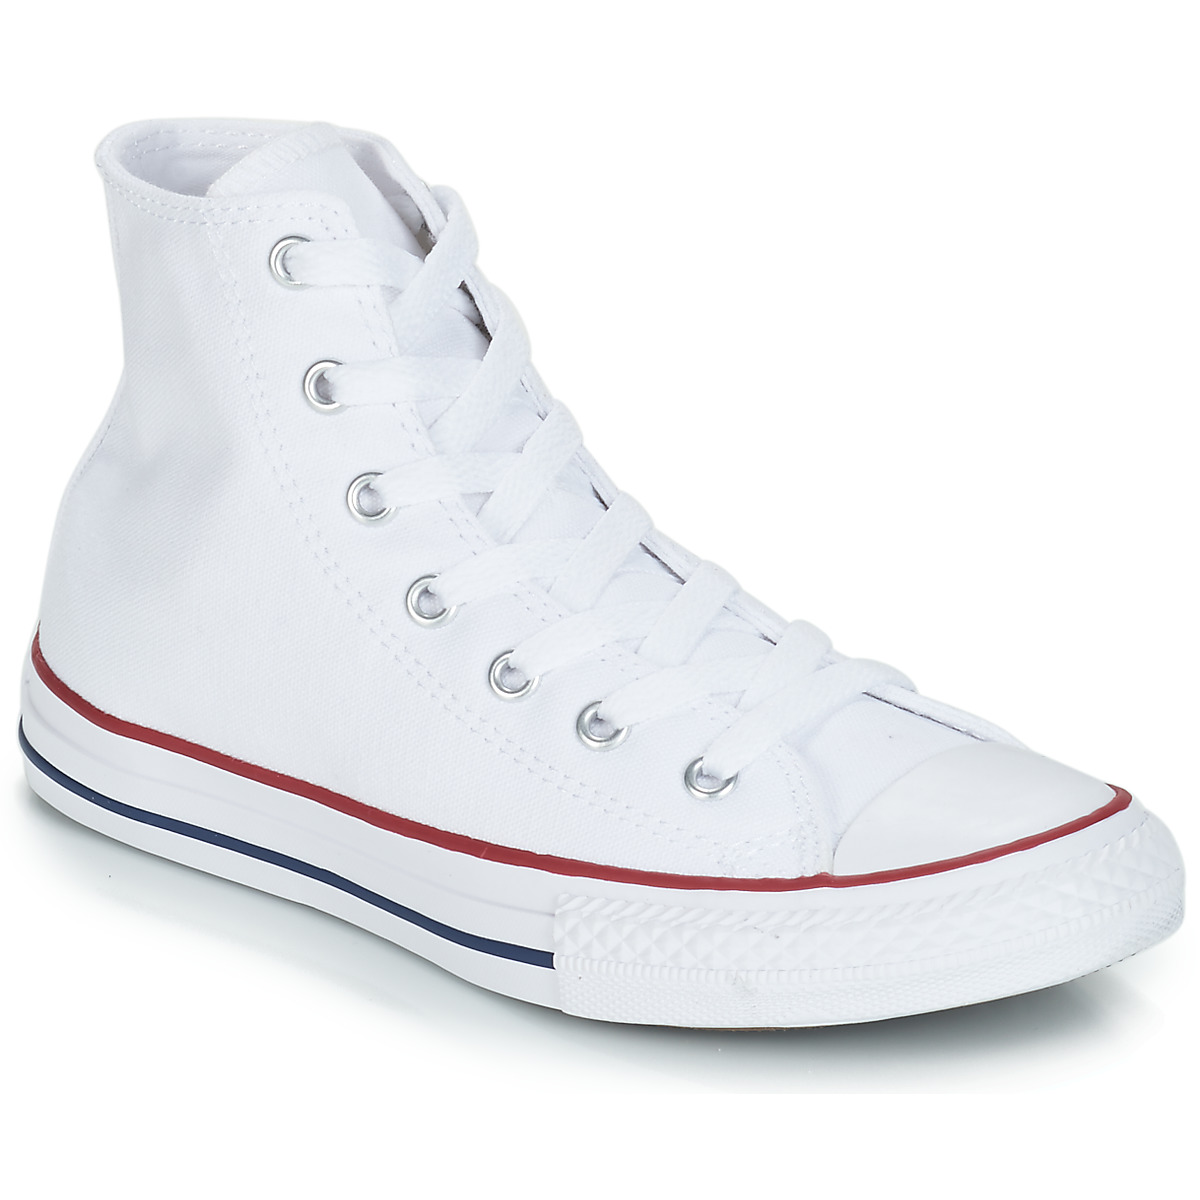 Converse CHUCK TAYLOR ALL STAR CORE HI White